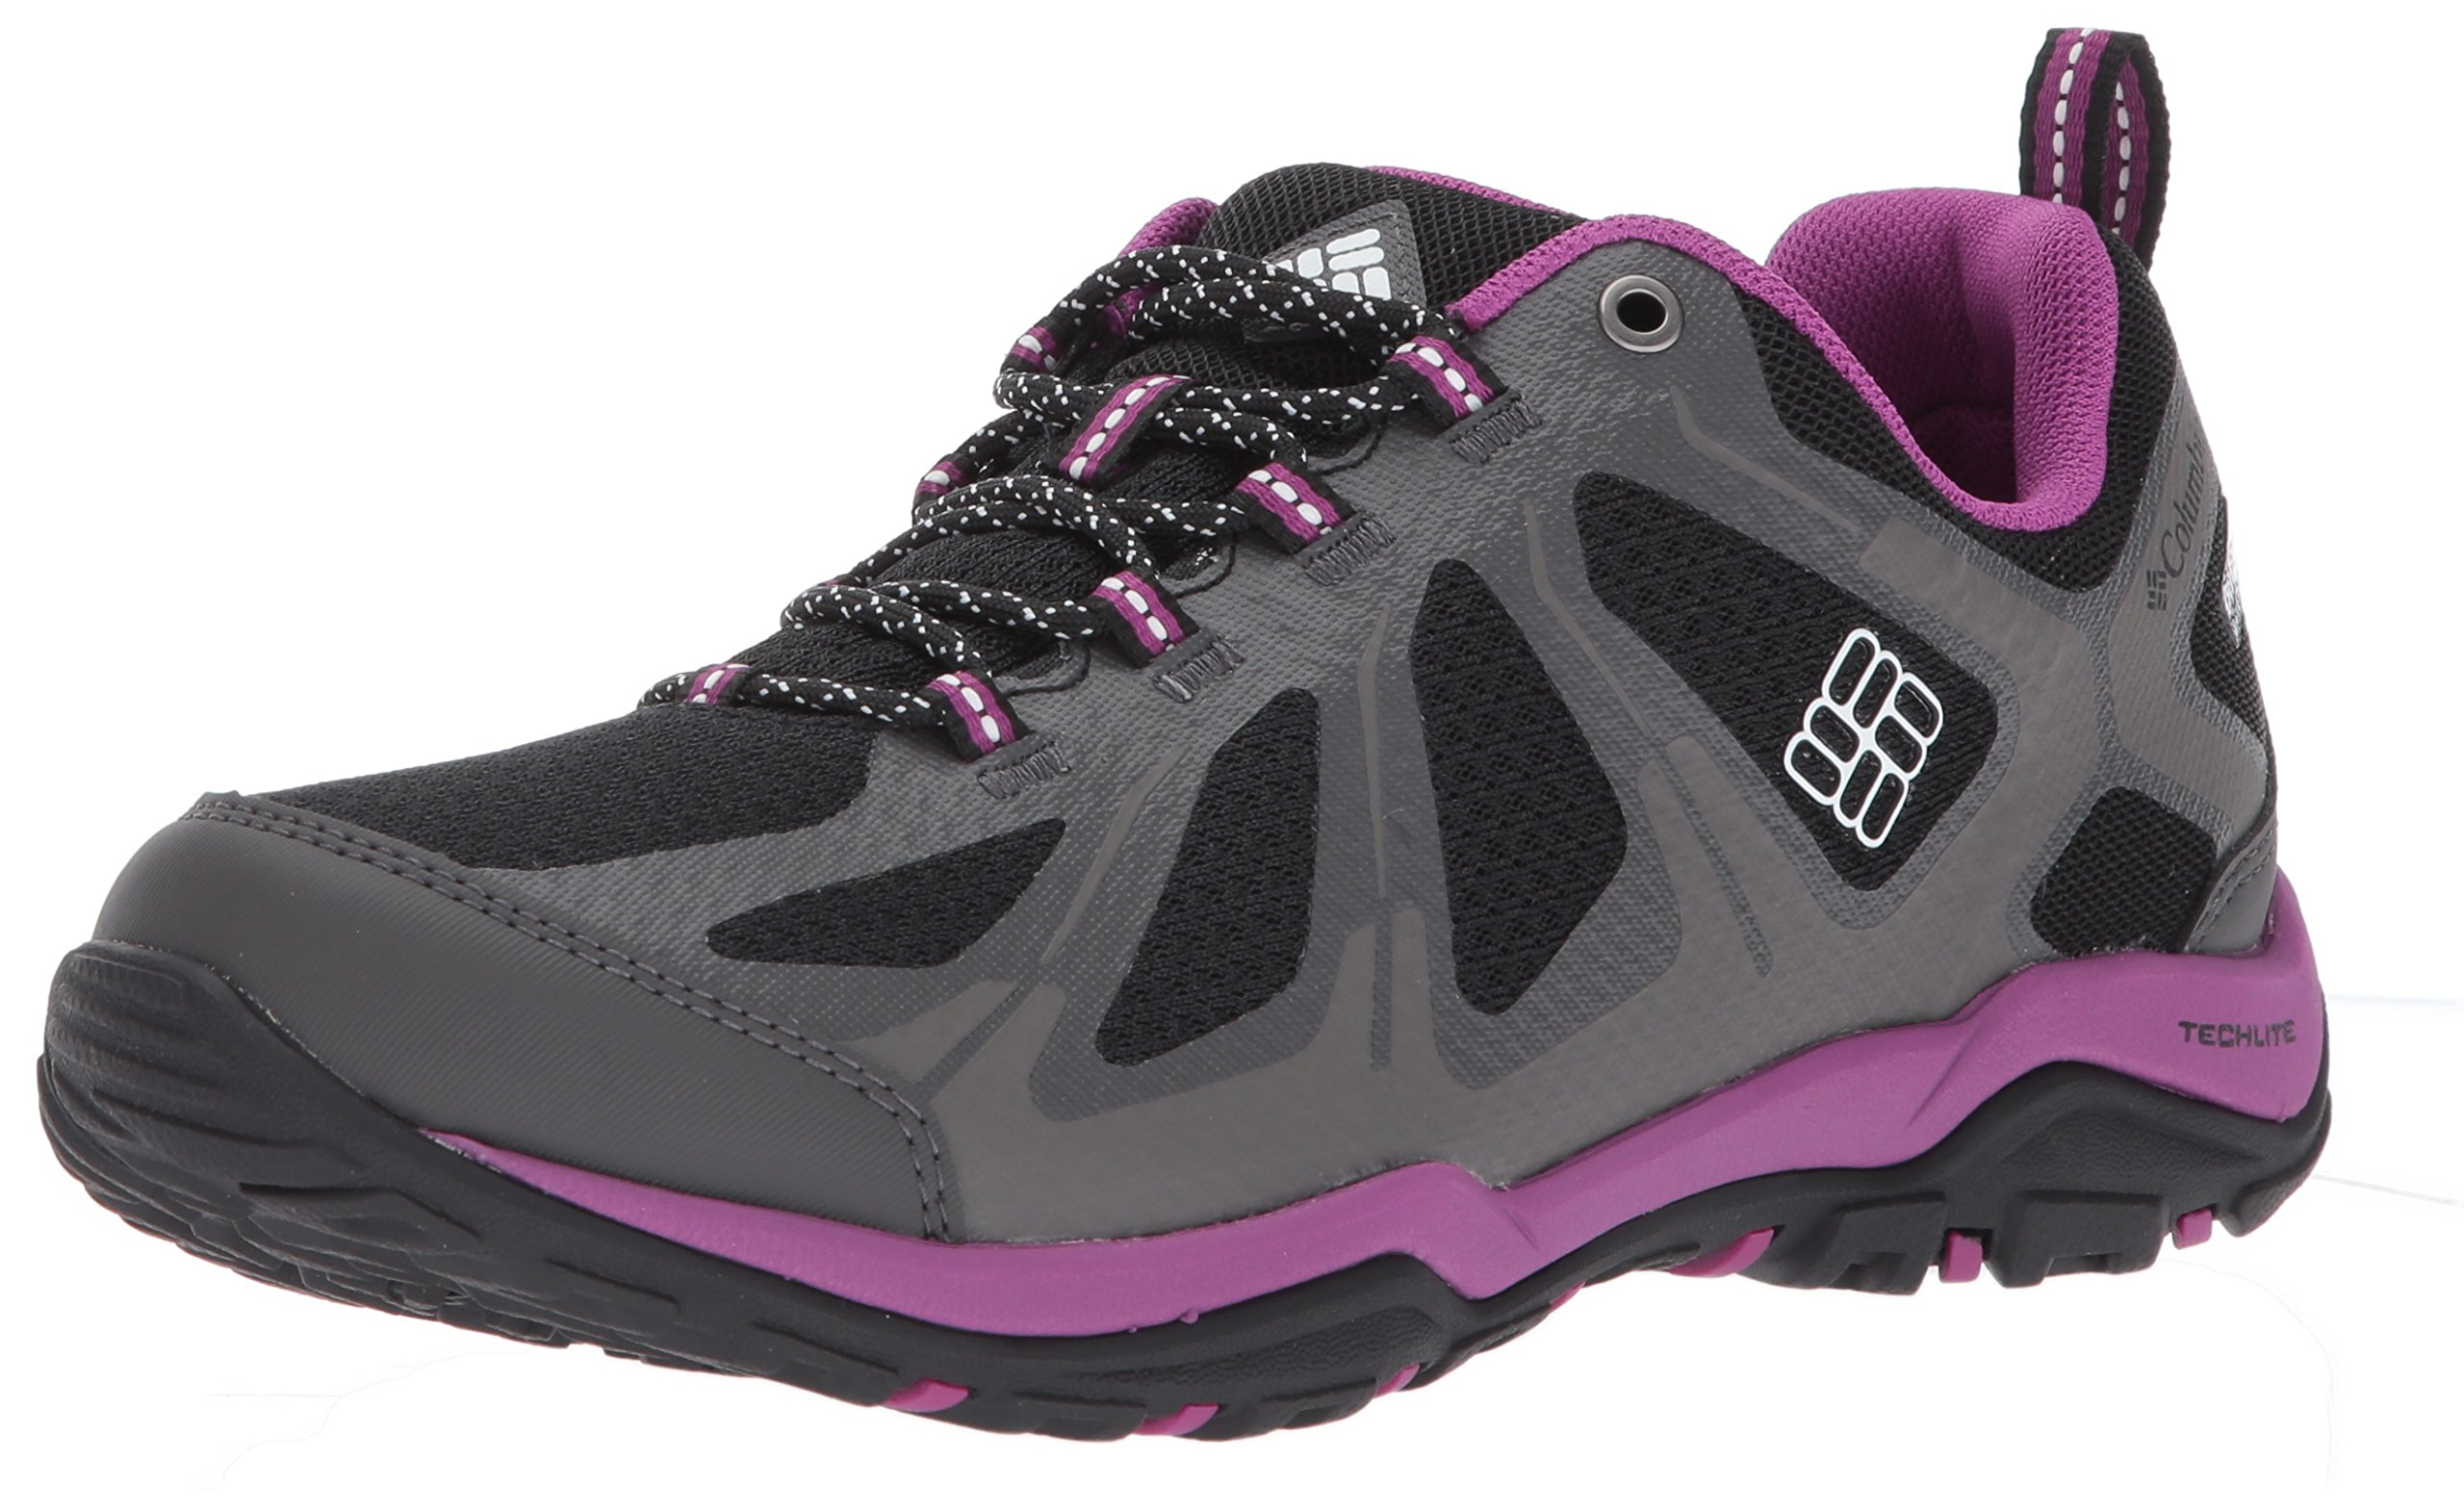 Columbia Women's Peakfreak XCRSN II Xcel Low Outdry Hiking Shoe, Black, Intense Violet, 10 B US